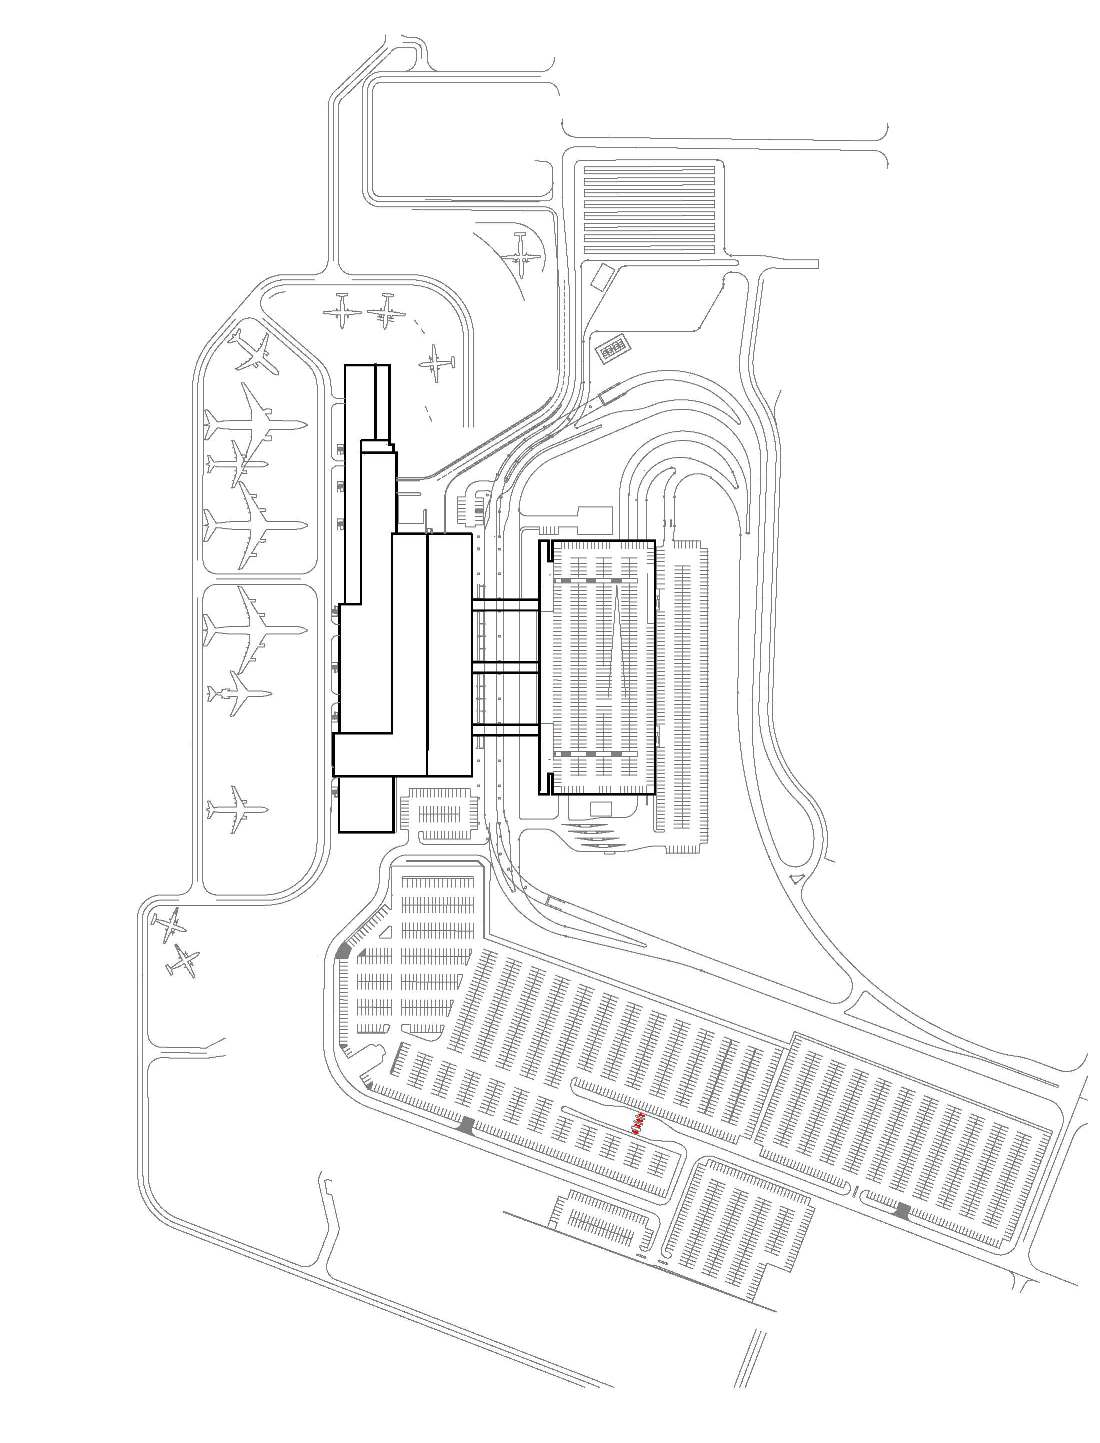 Simple plan view of airport with planes on the left and parking on the right and below